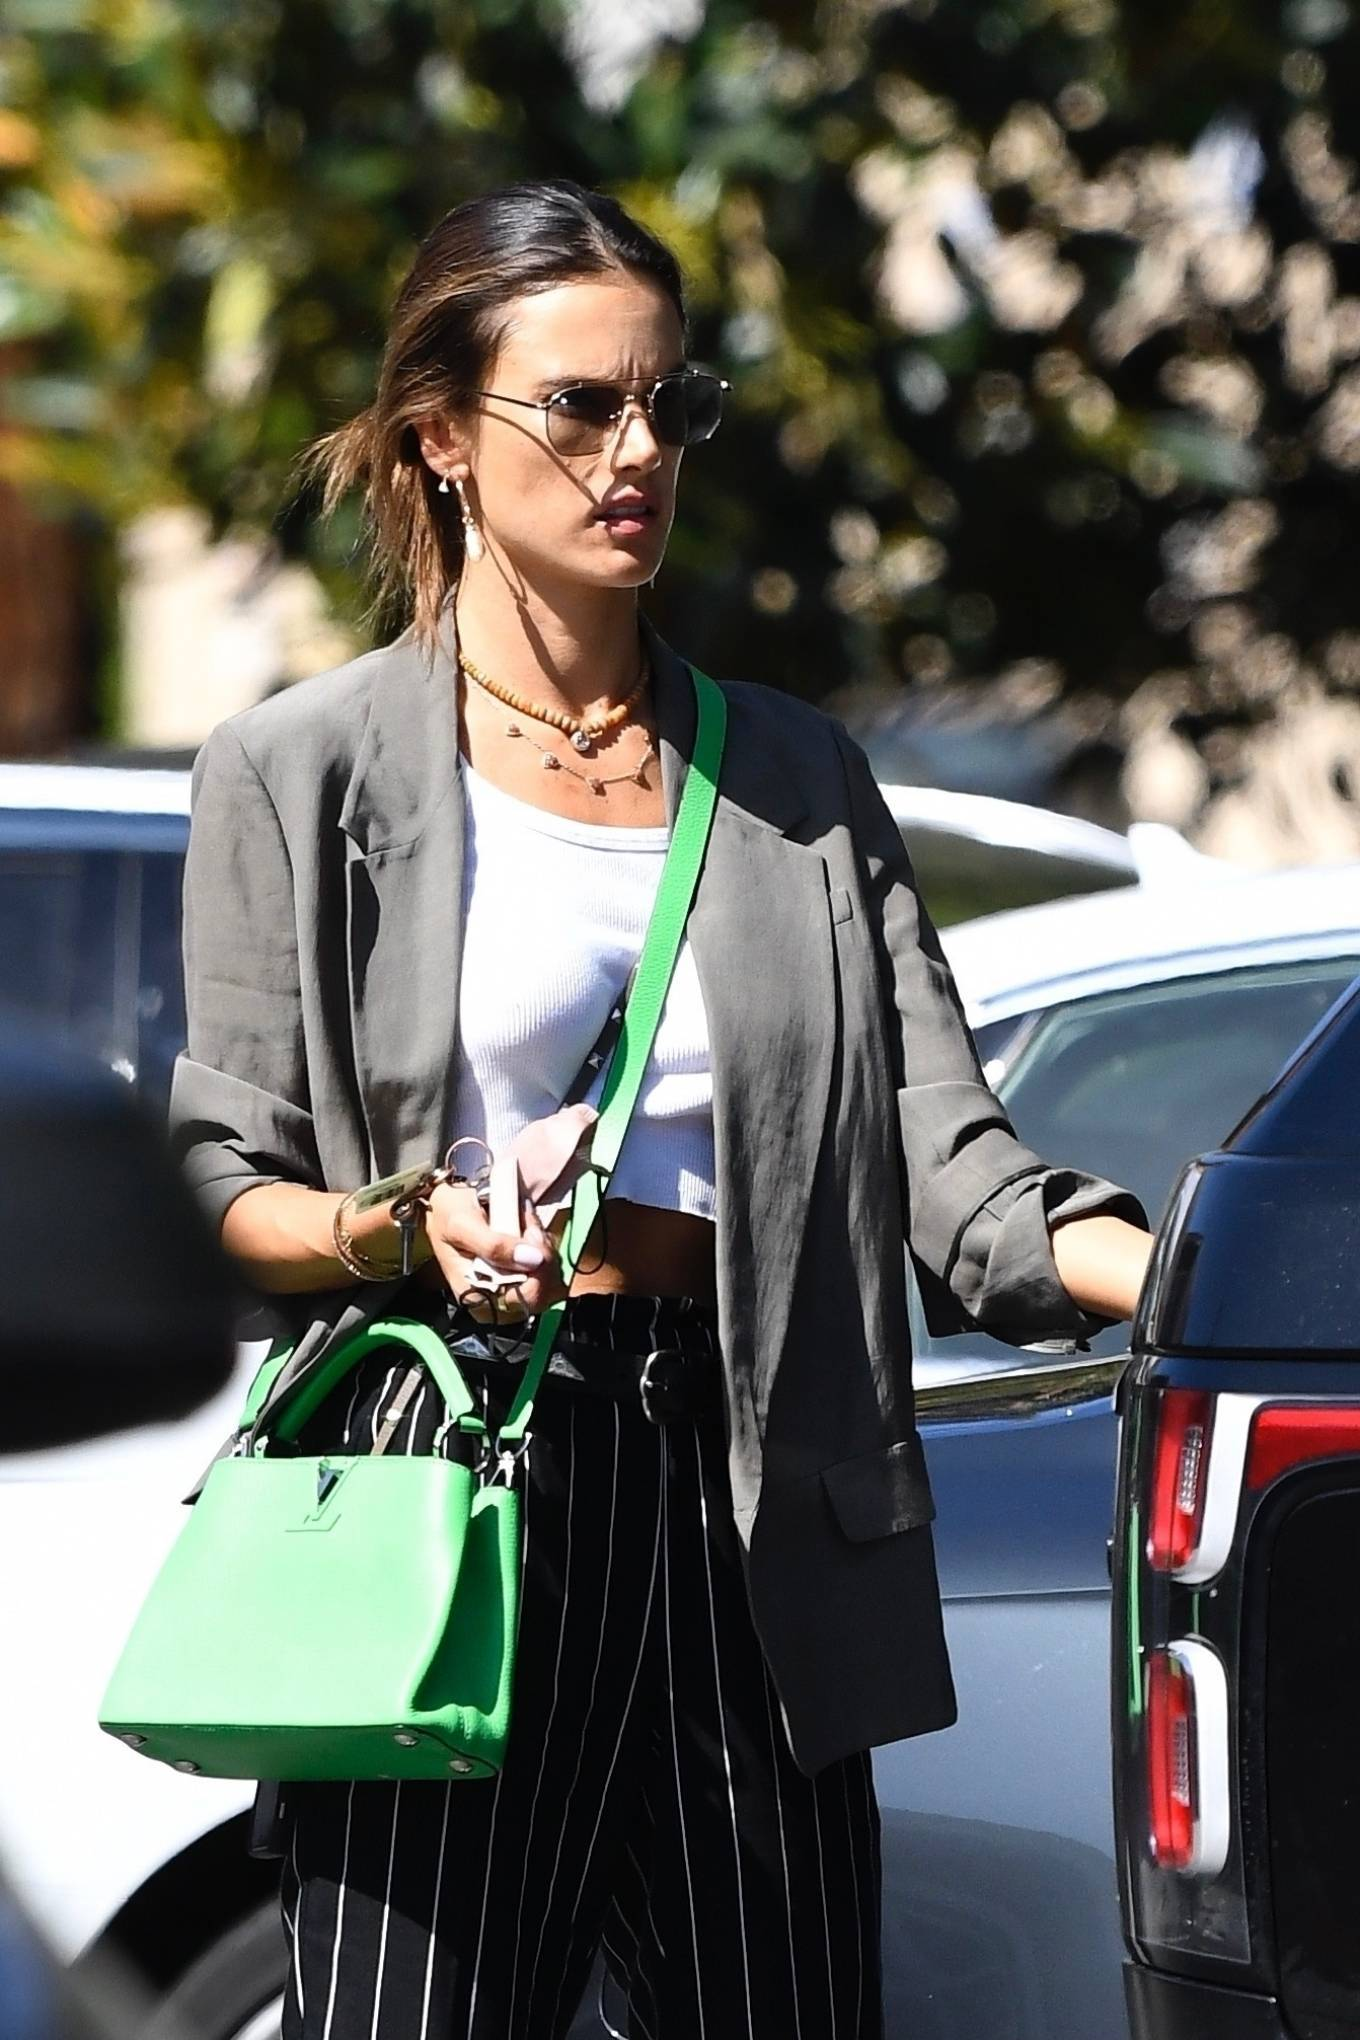 Alessandra Ambrosio rocking brand logo white black lace-up sneakers by New Balance with chunky sole